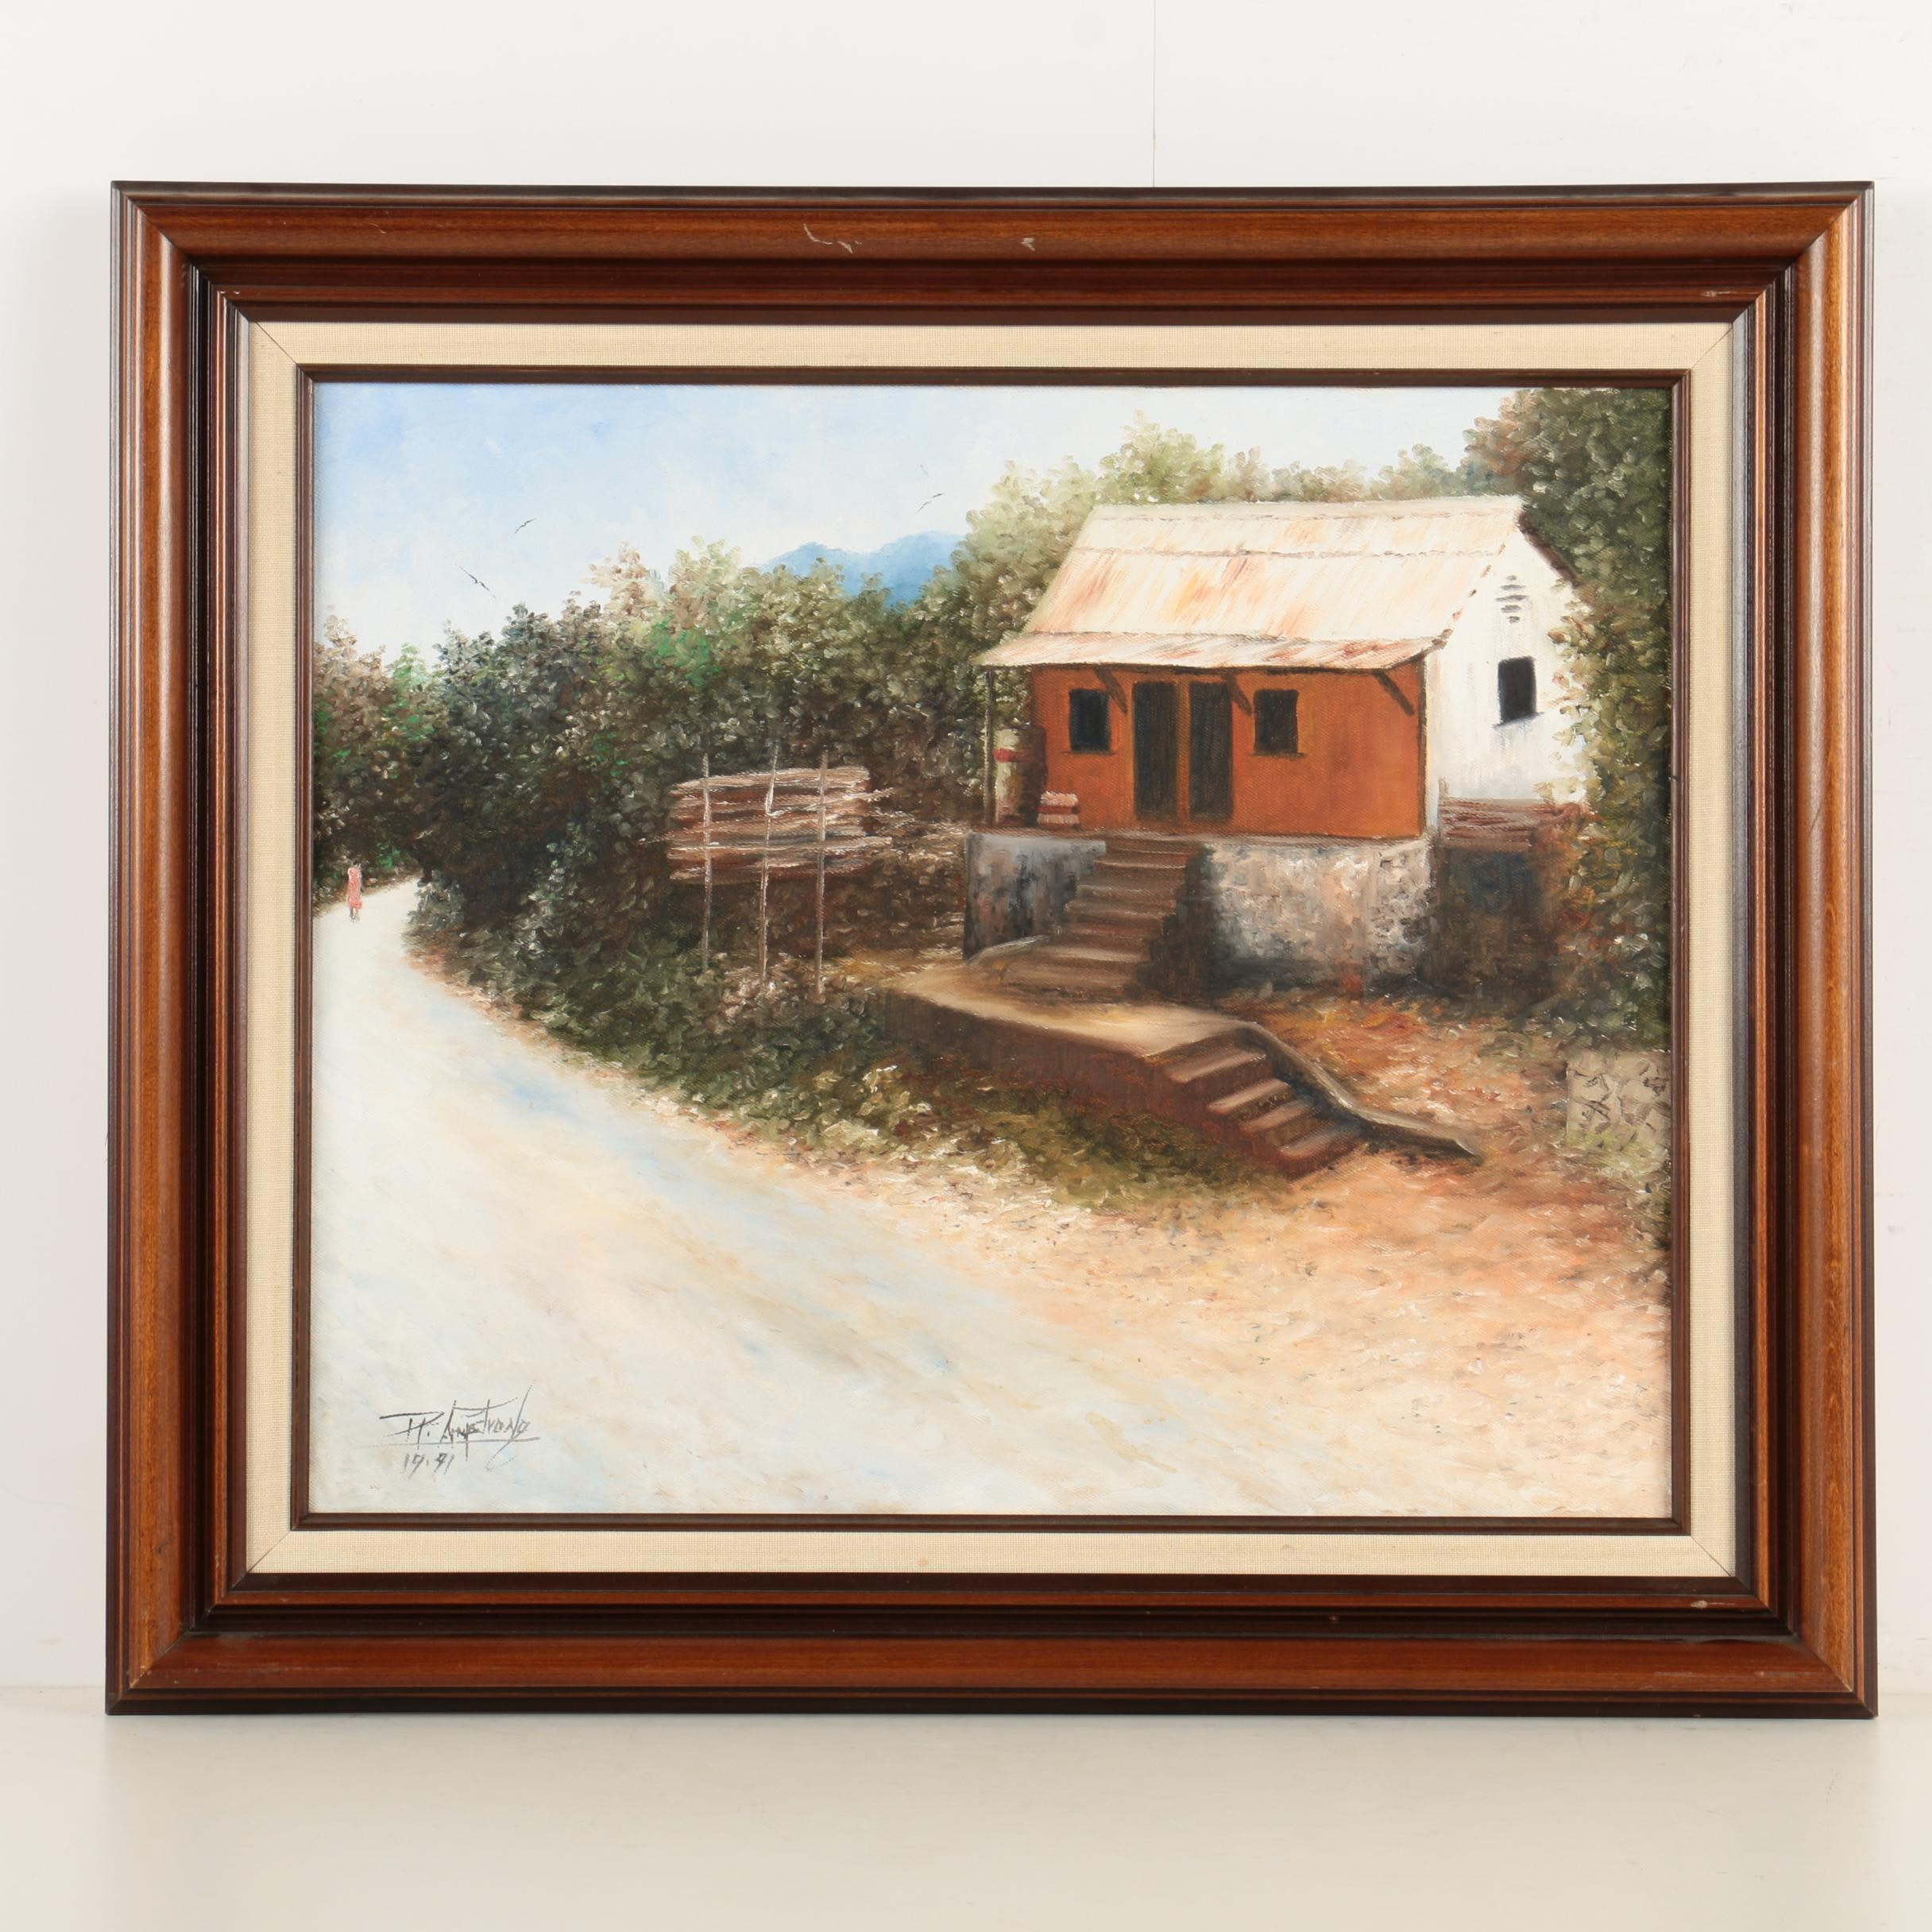 Robert Armstrong Oil Painting of a Shack